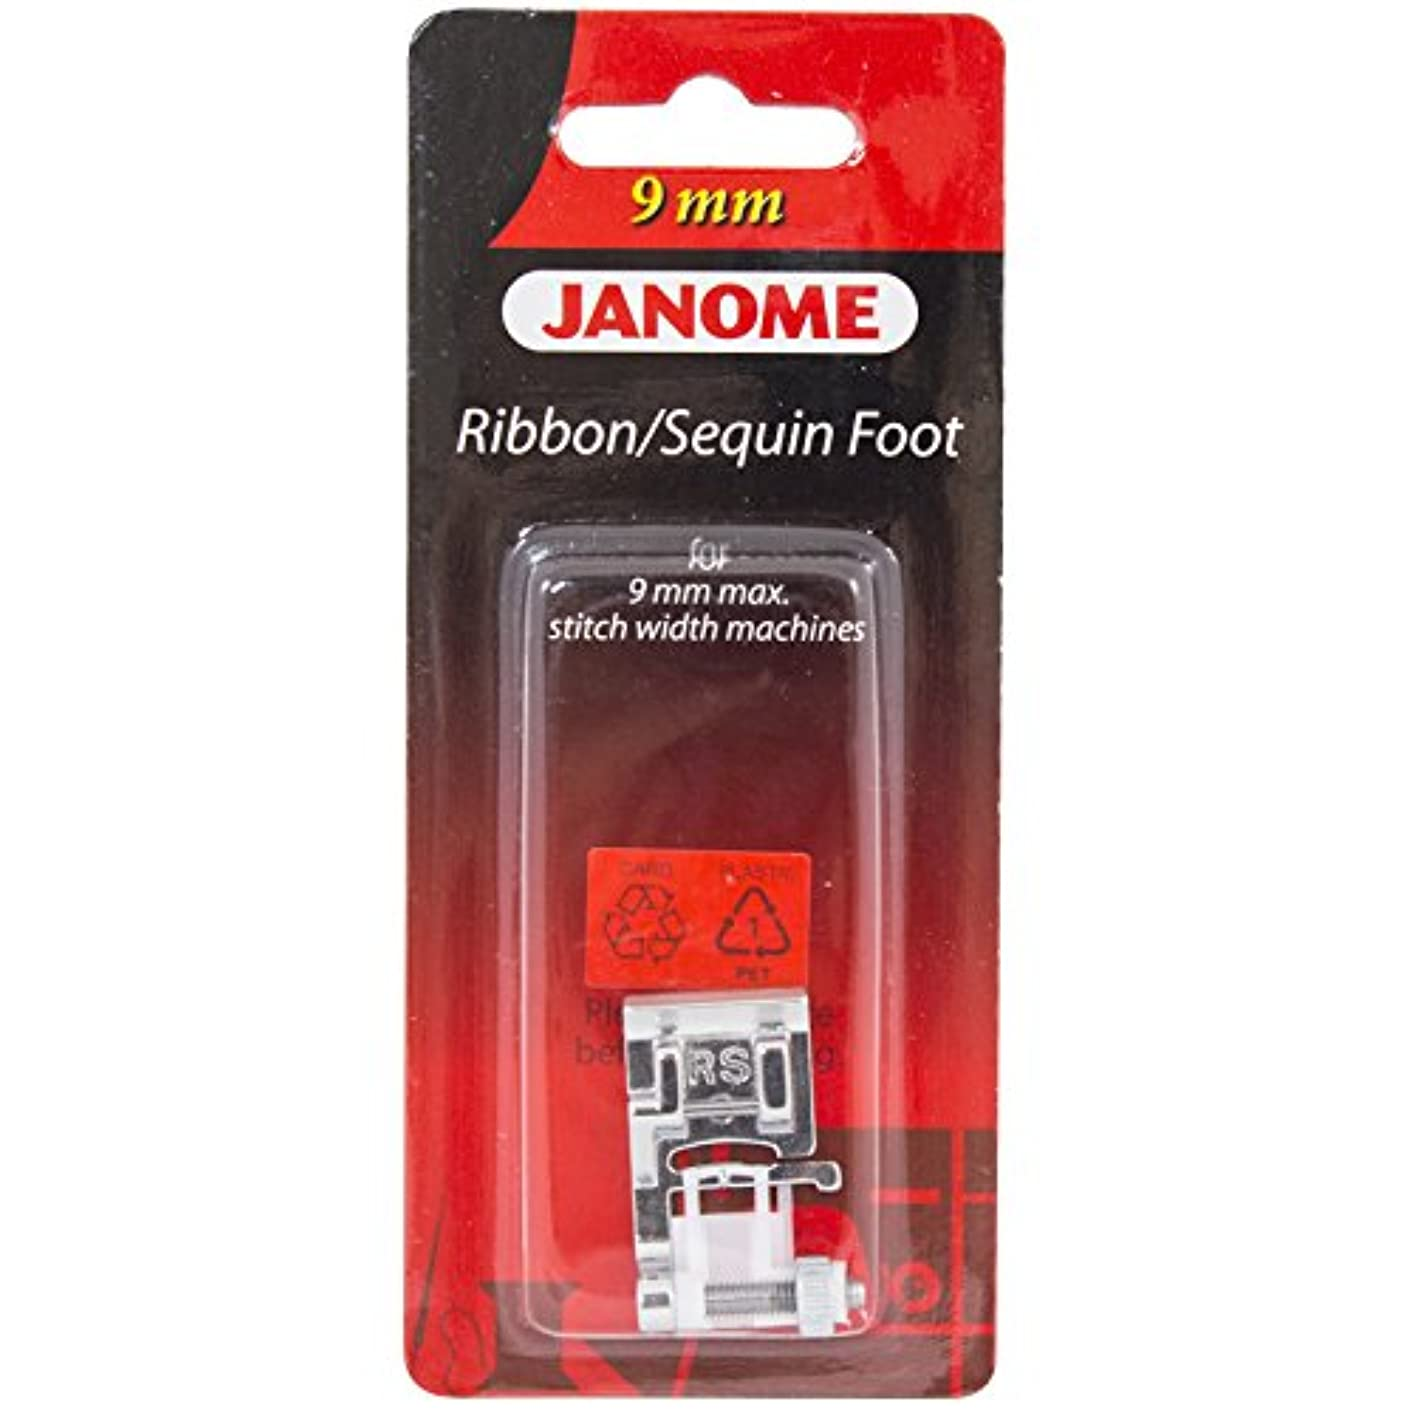 Janome Ribbon & Sequin Foot For 9mm Machines